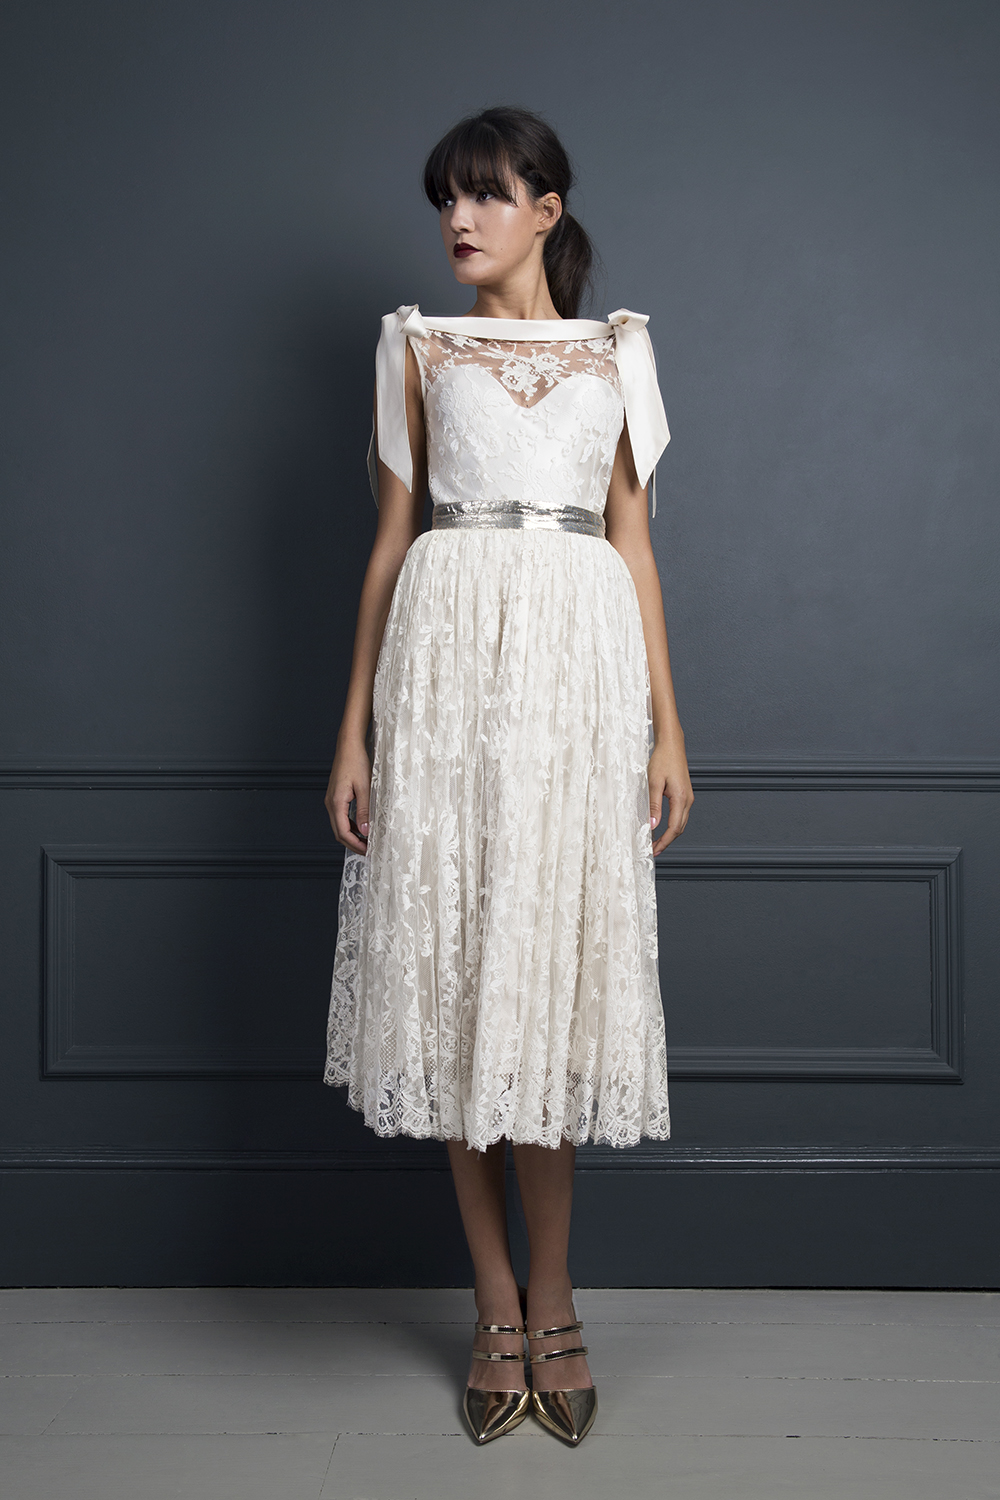 CHRISTABELLE SKIRT & IRENE TOP | WEDDING DRESS BY HALFPENNY LONDON